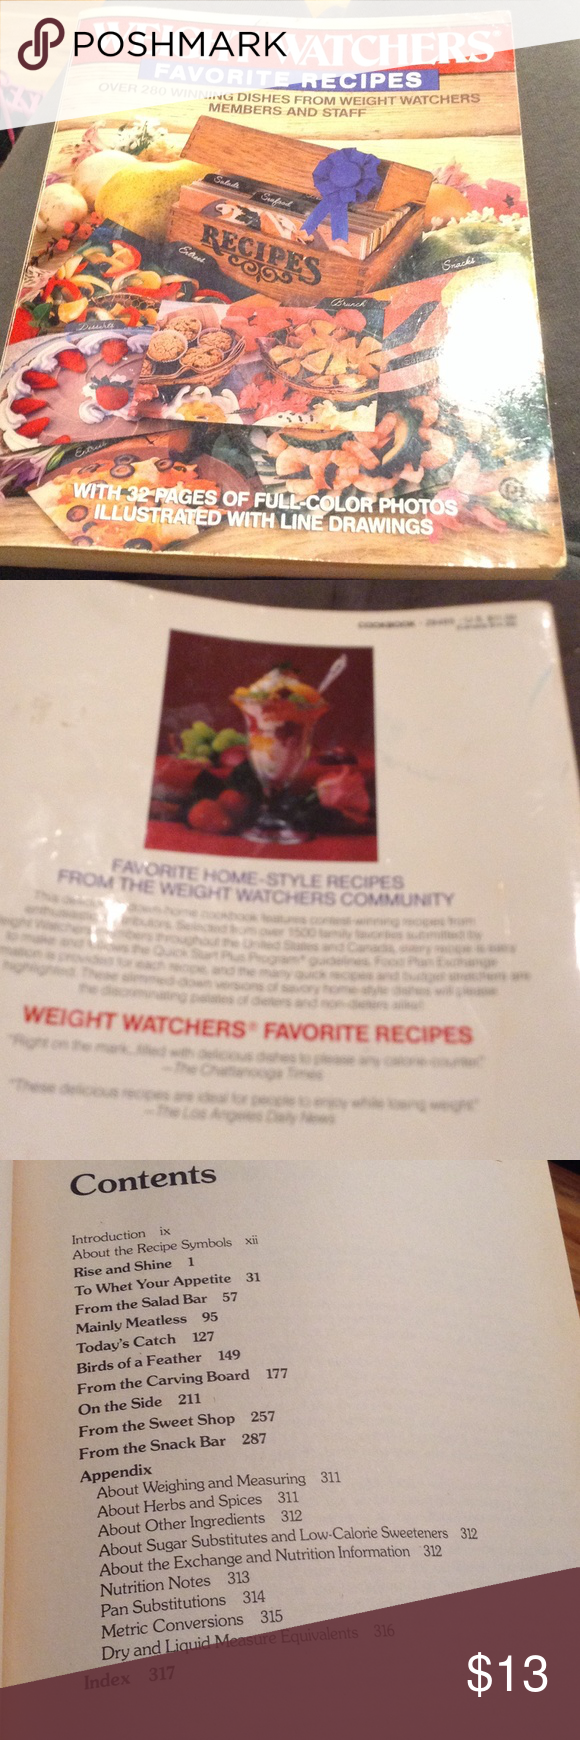 Weight Watchers favorite Recipes Weight Watchers Favorite Recipes over 280 winning dishes from weight watchers members and staff with 32 pages of full color photos weight watchers Other